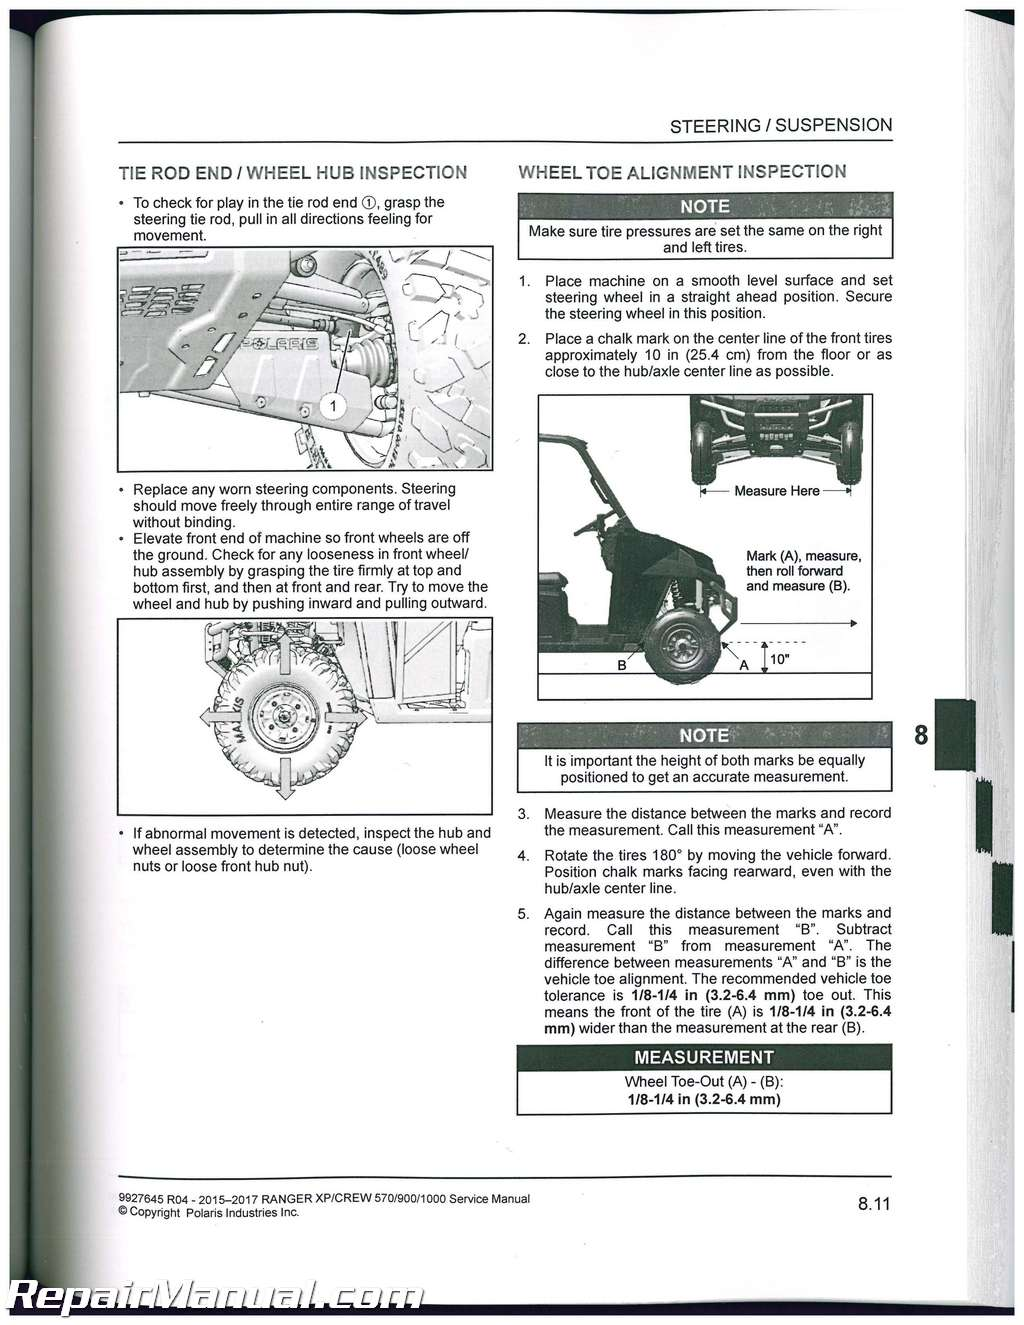 polaris rzr wiring diagram ba6e3c9 polaris ranger 900 xp wiring diagram wiring resources polaris rzr 1000 wiring diagram polaris ranger 900 xp wiring diagram